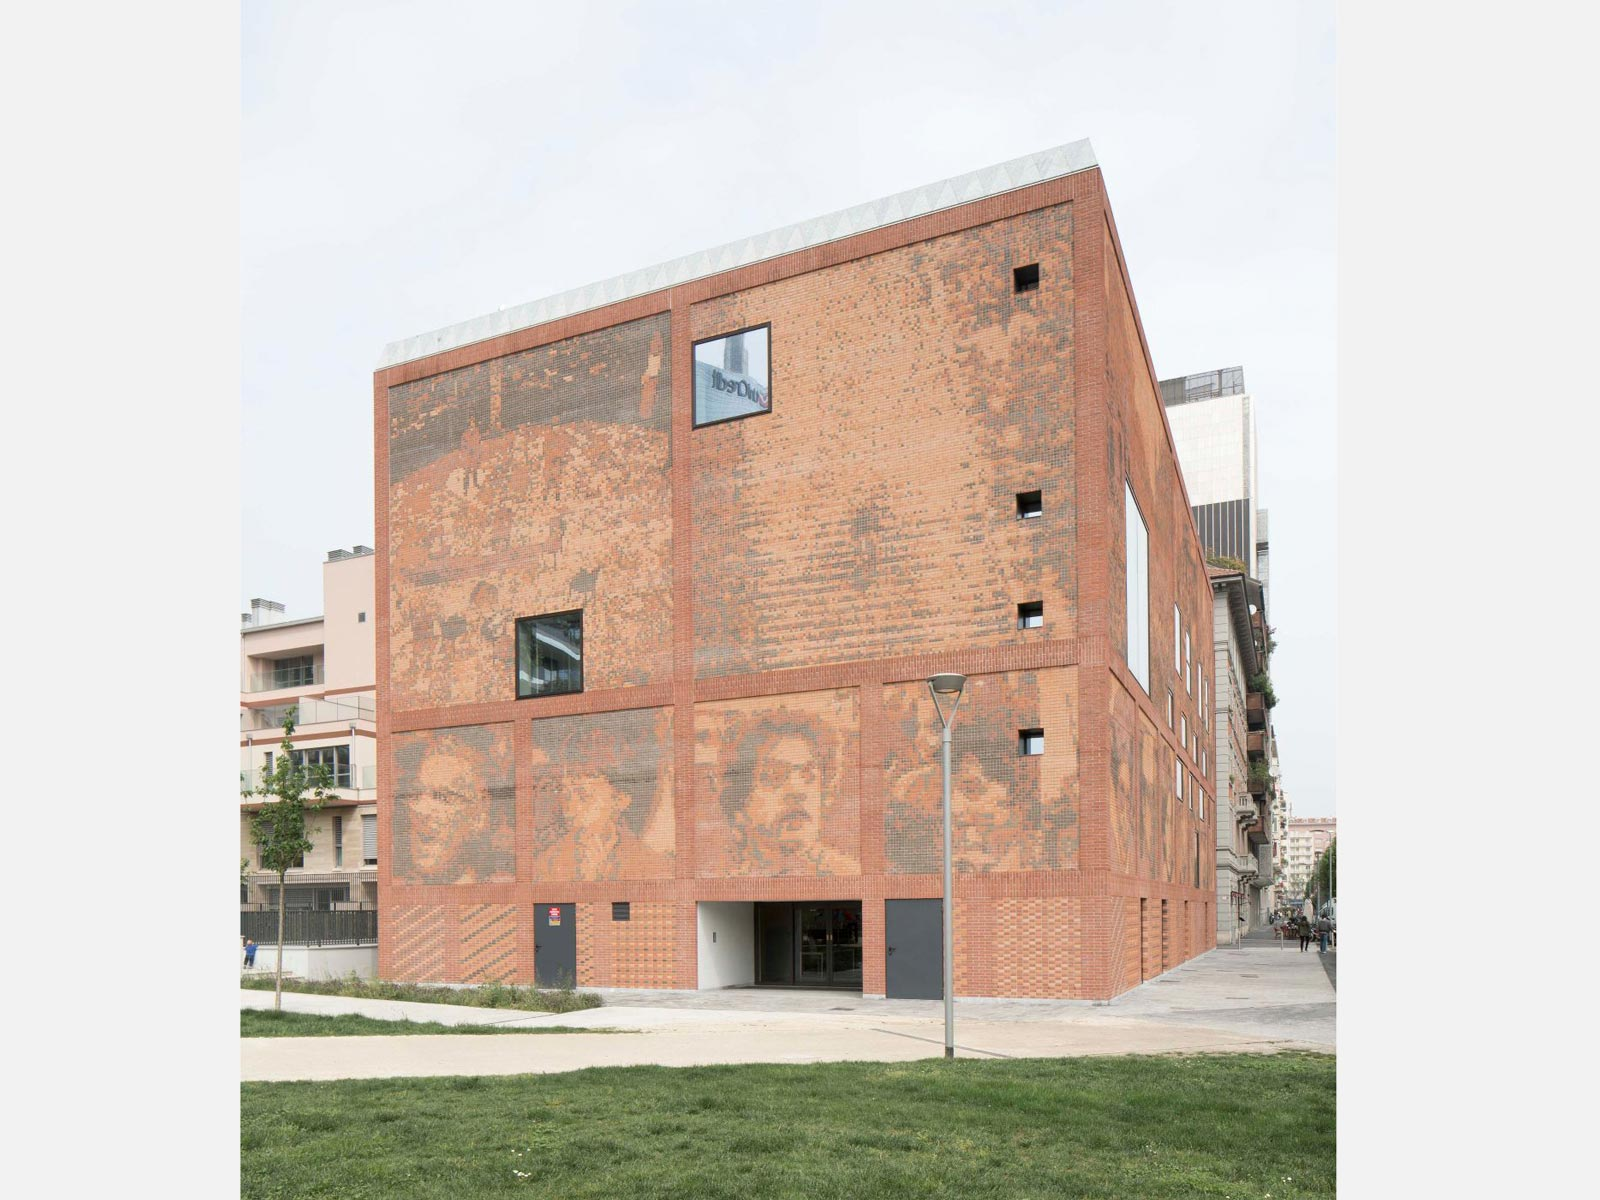 The house of memory in milan   uncube